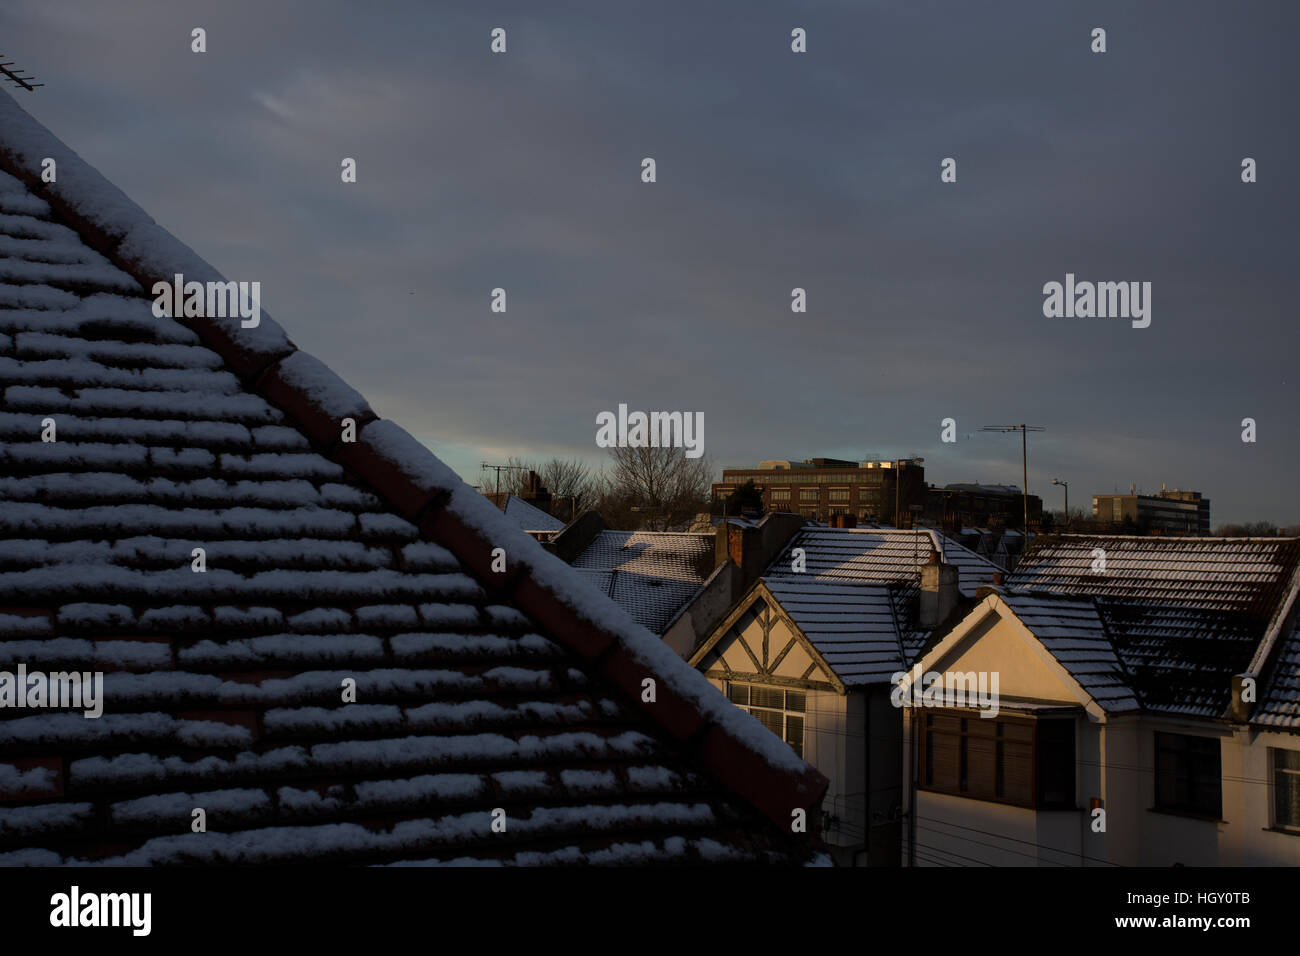 Snow on roof, Southend-on-sea, Essex Stock Photo